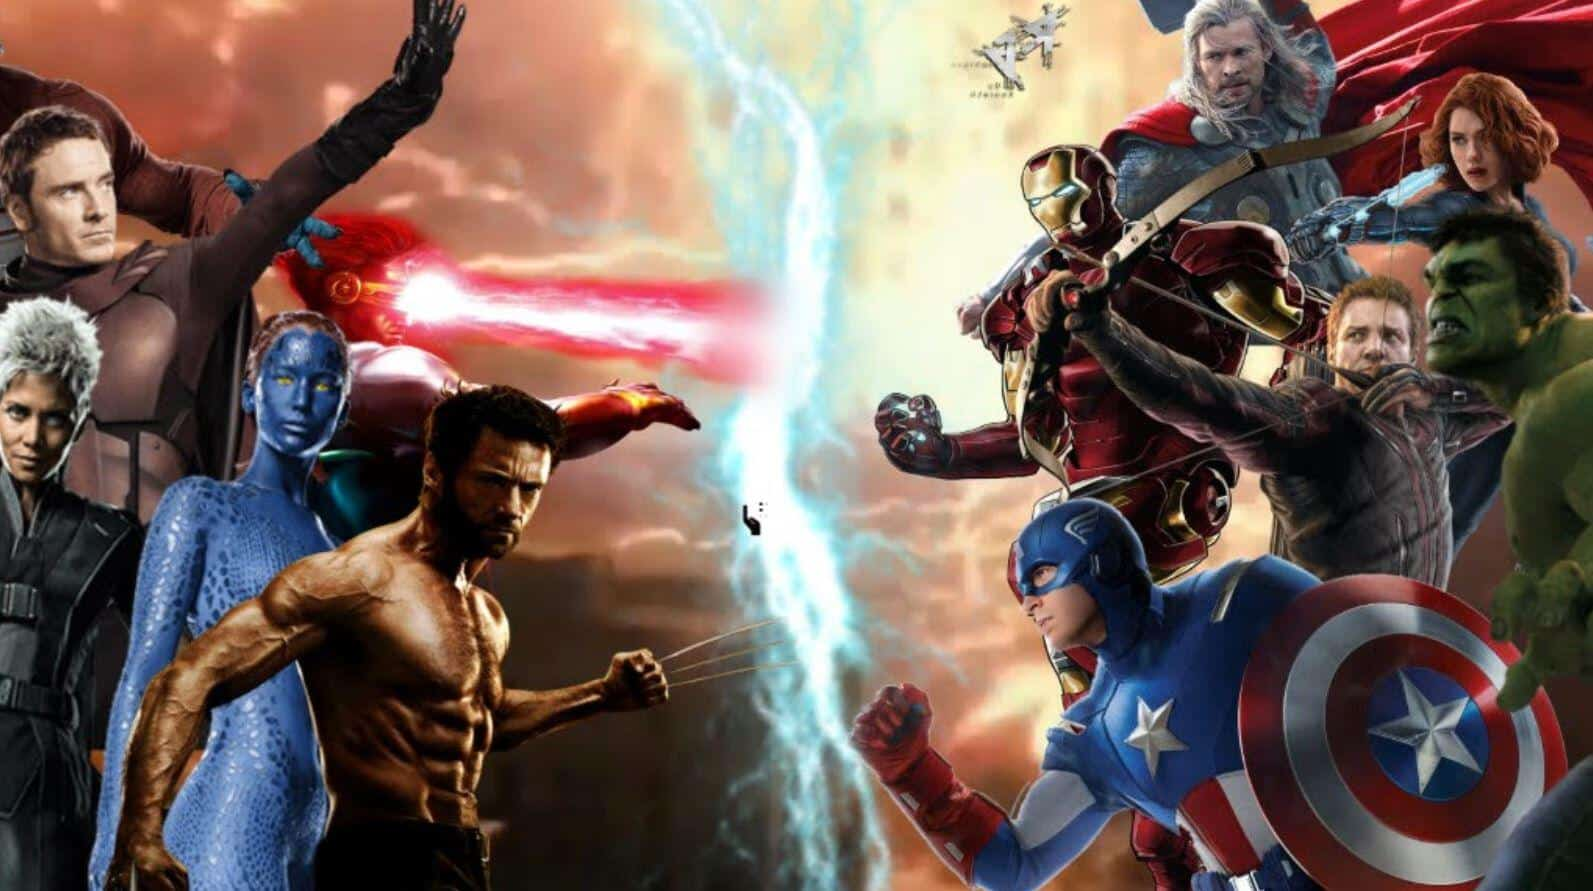 Marvel Avengers Vs. X-Men